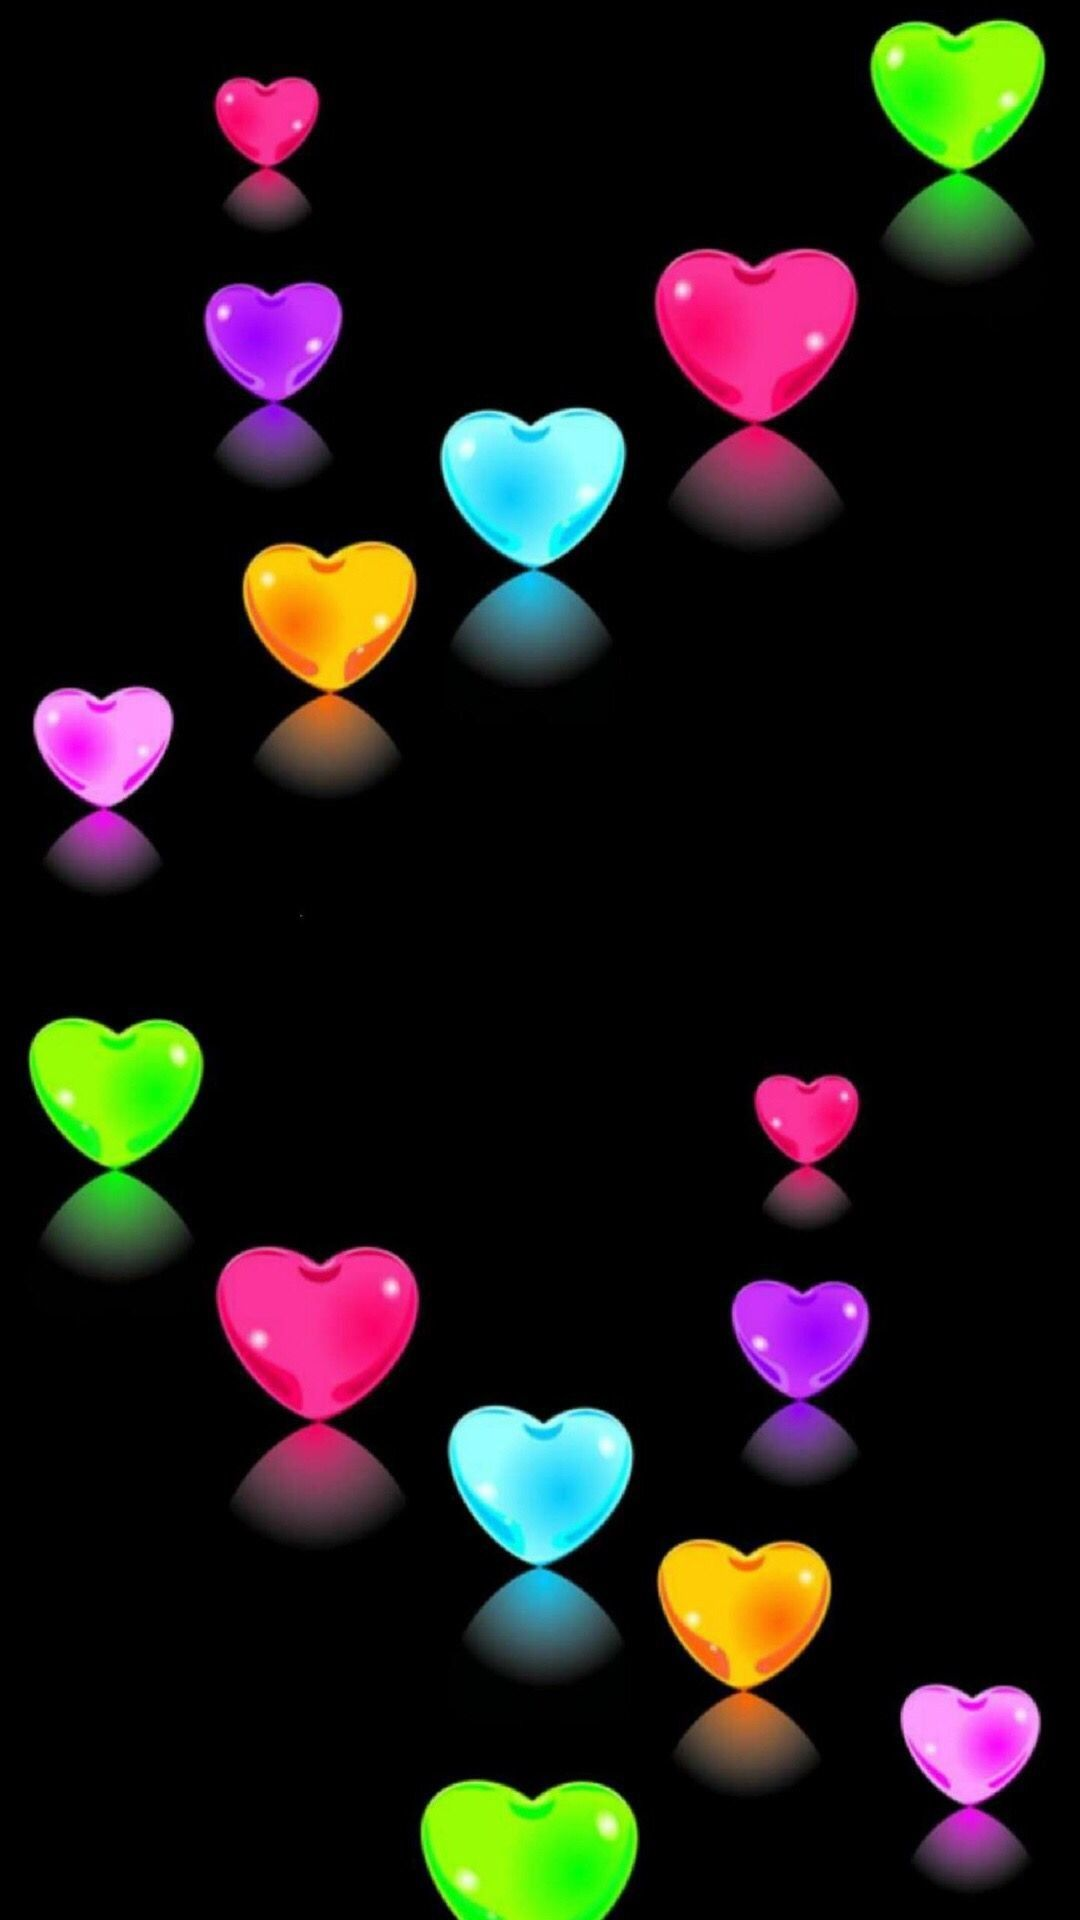 rainbow heartandroid iphone desktop hd backgrounds wallpapers 1080p 4k dgbqq